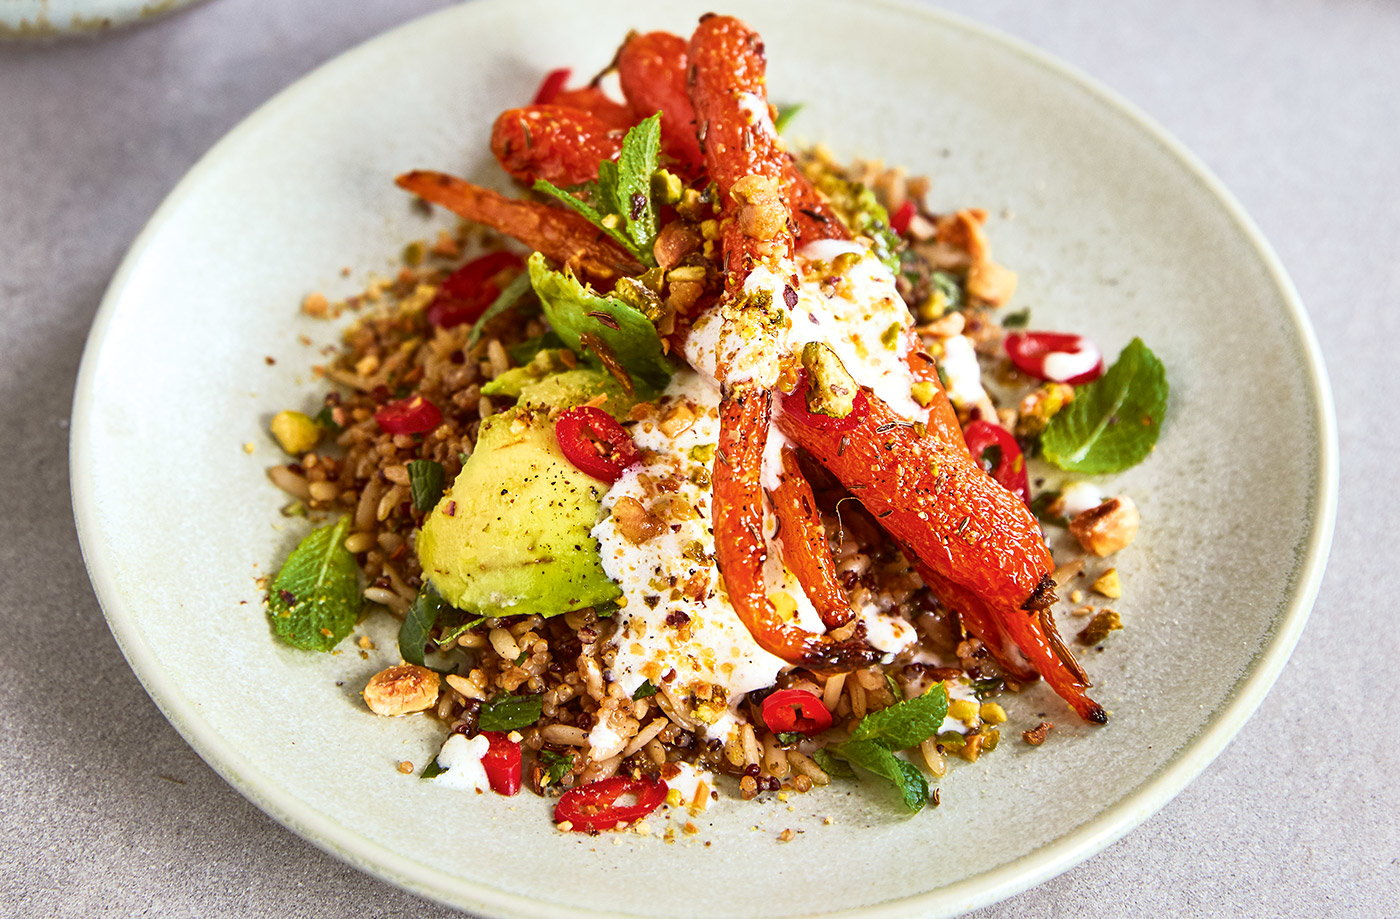 Roasted carrot and grain salad recipe